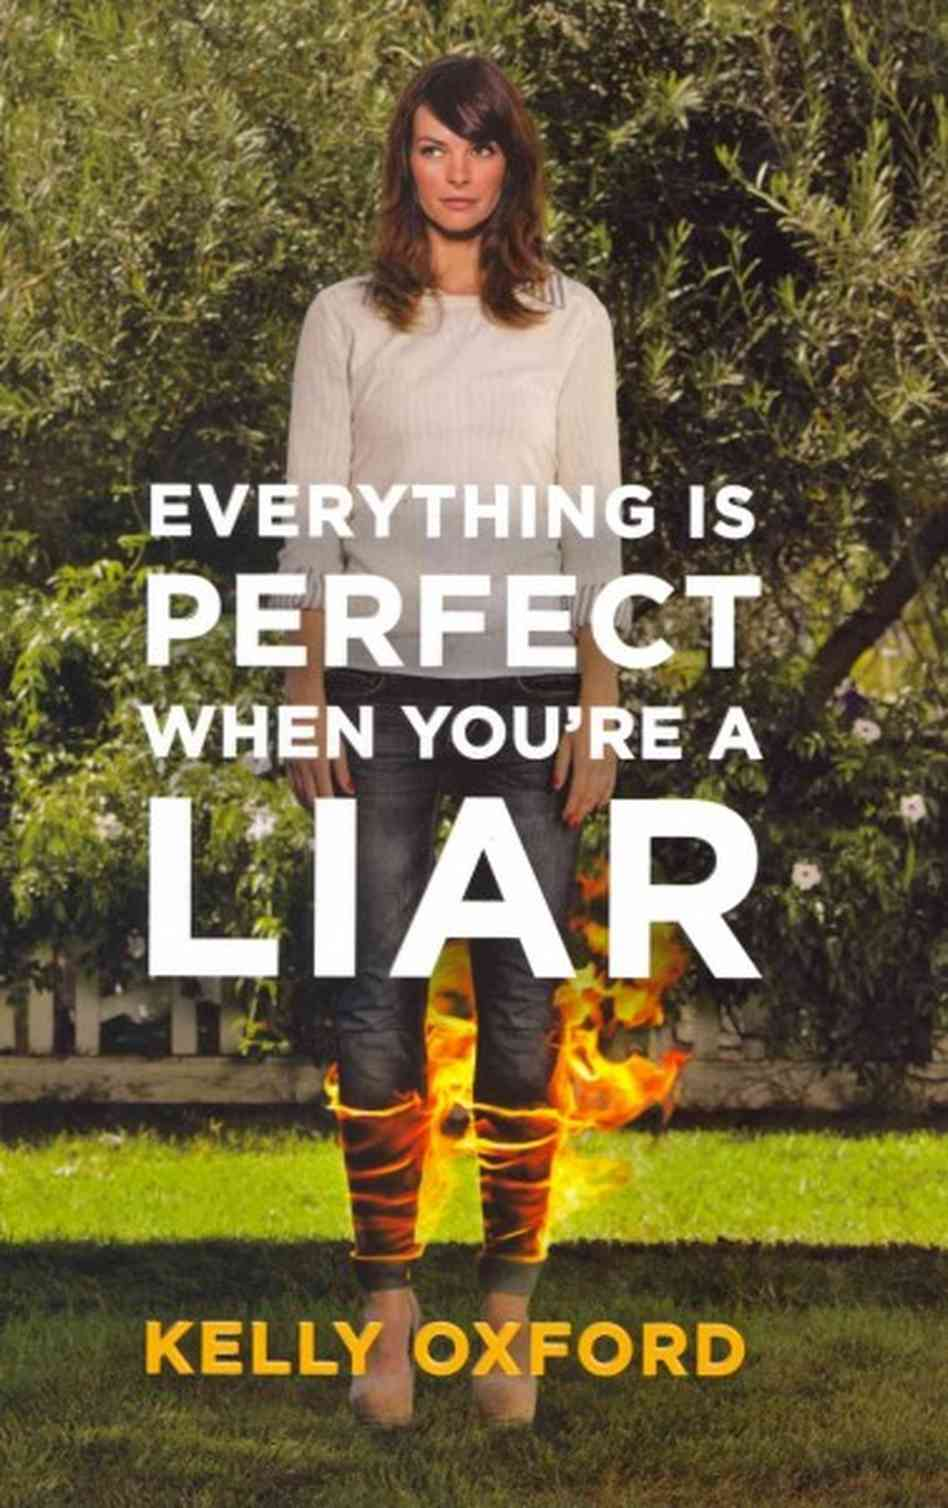 Who Is Perfekt litstack review everything is when you re a liar